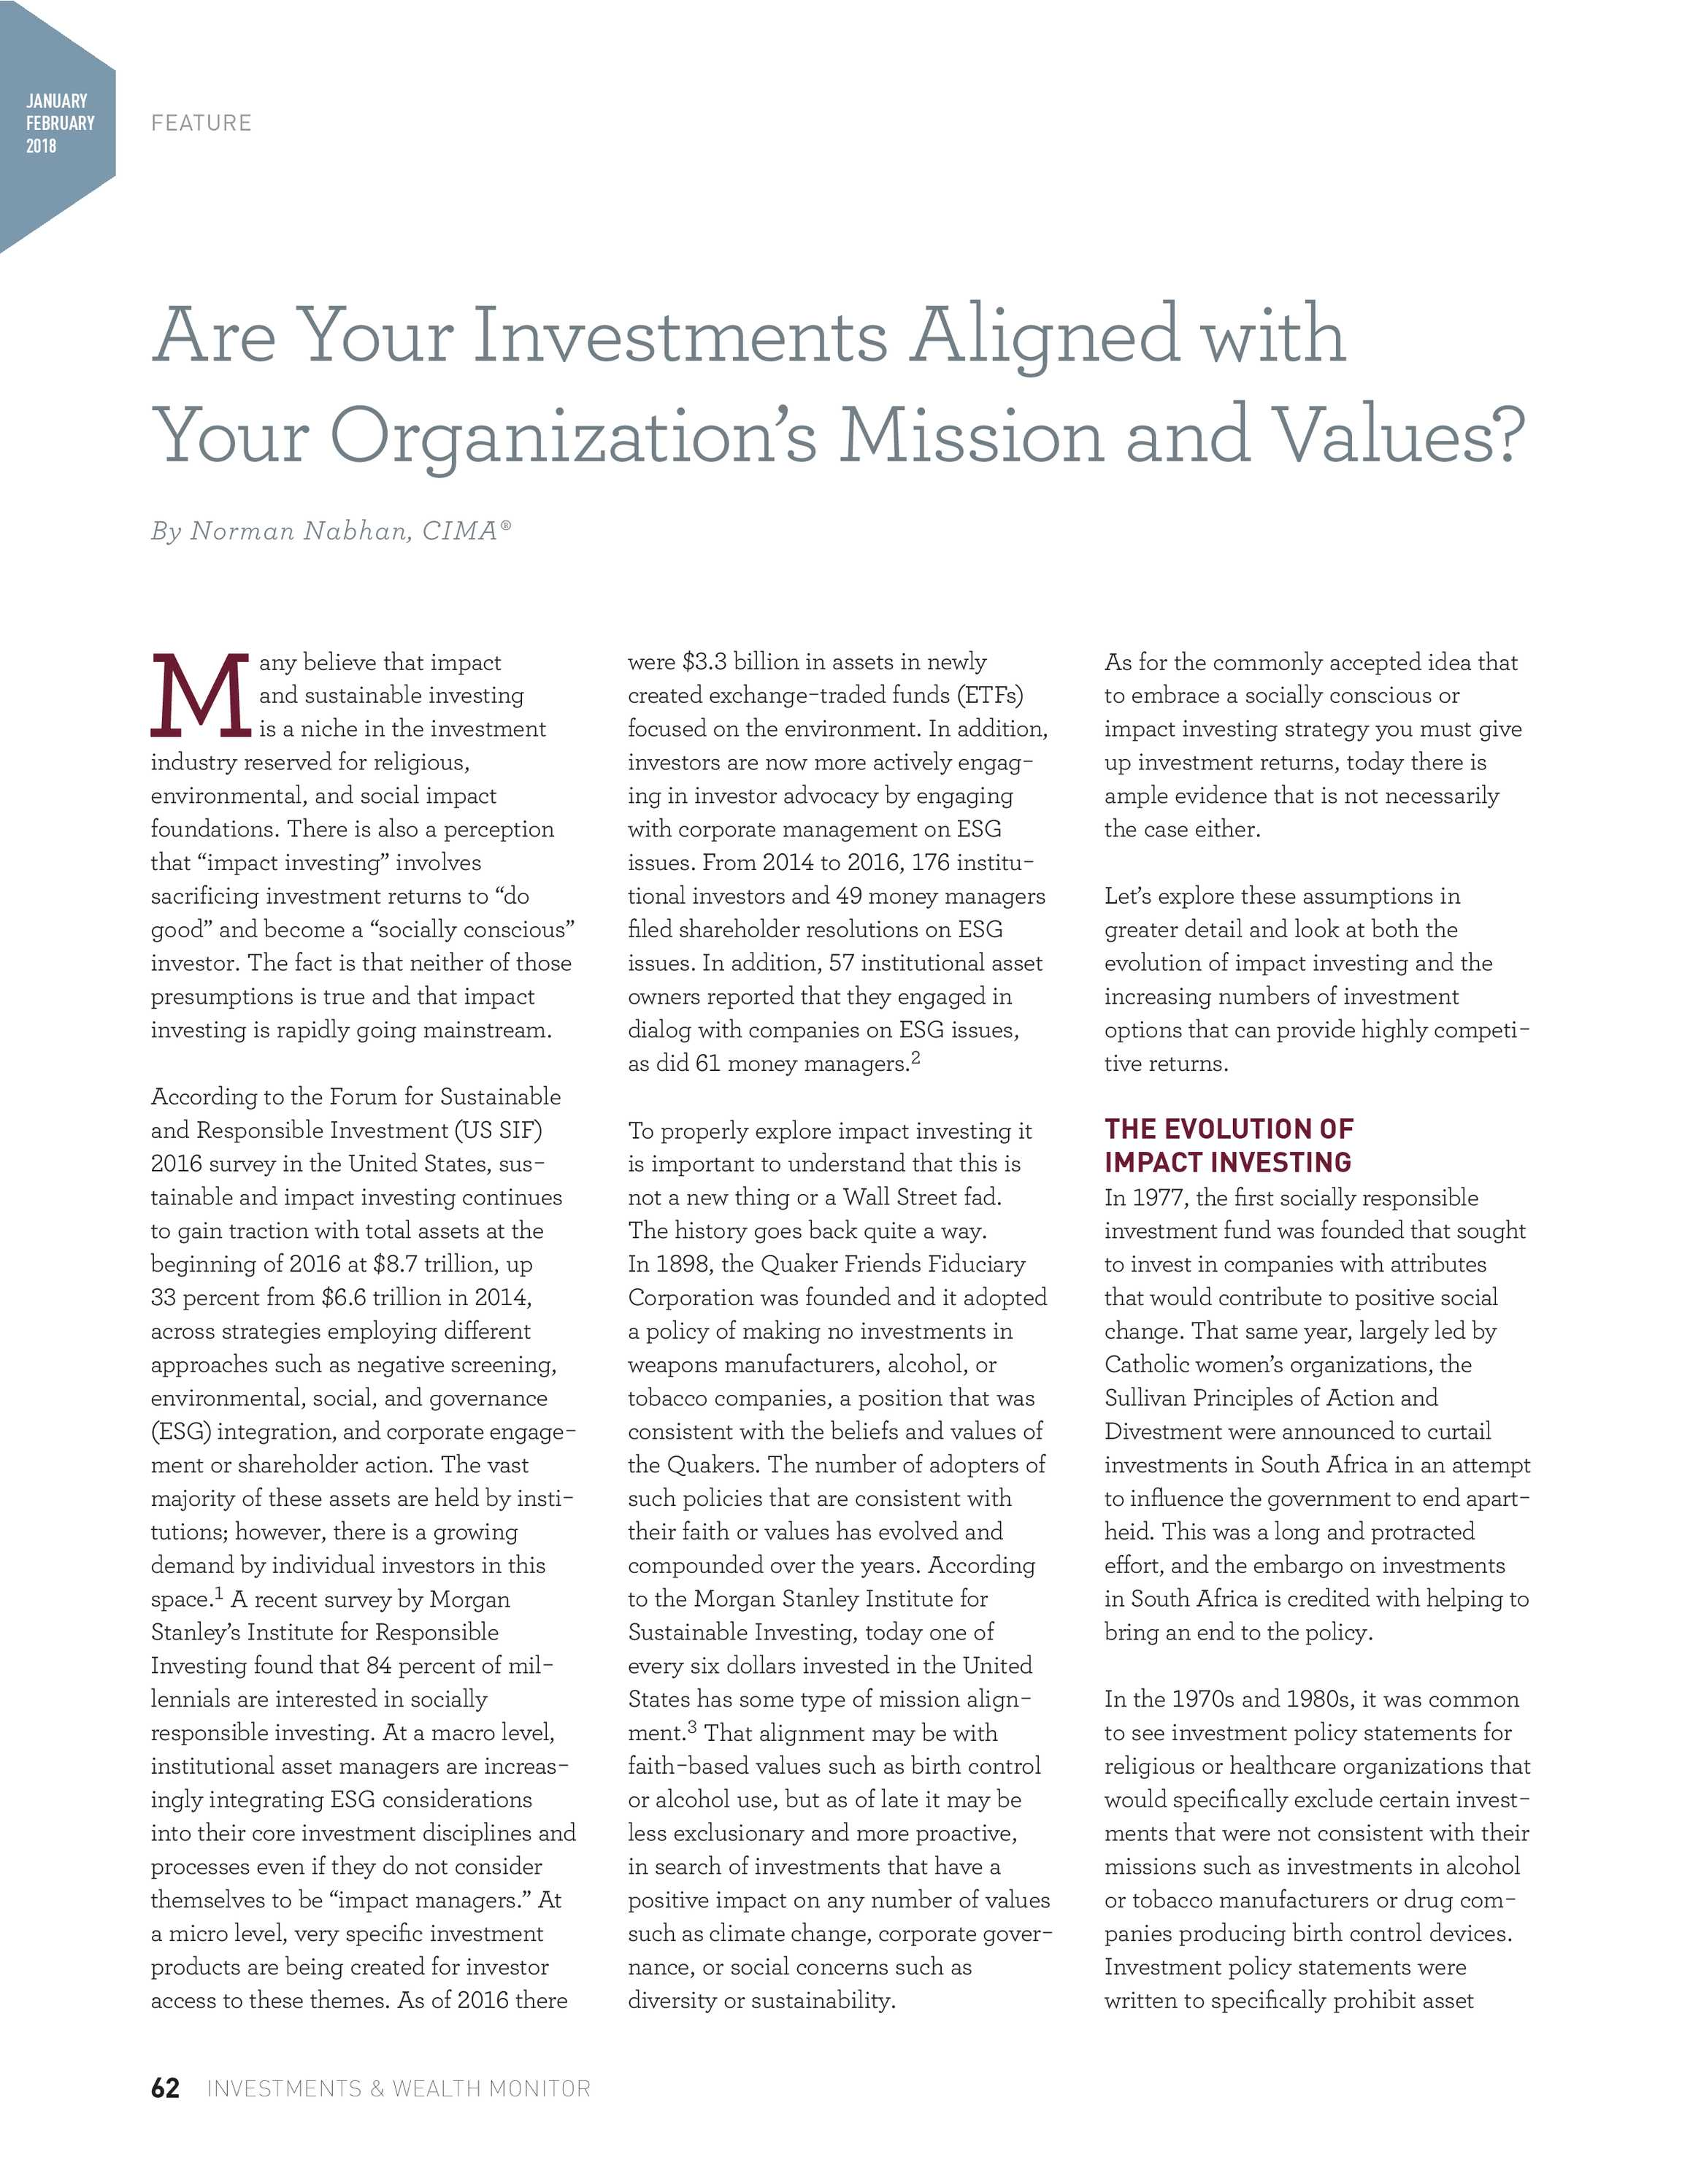 Investments & Wealth Monitor - January/February 2018 - page 62